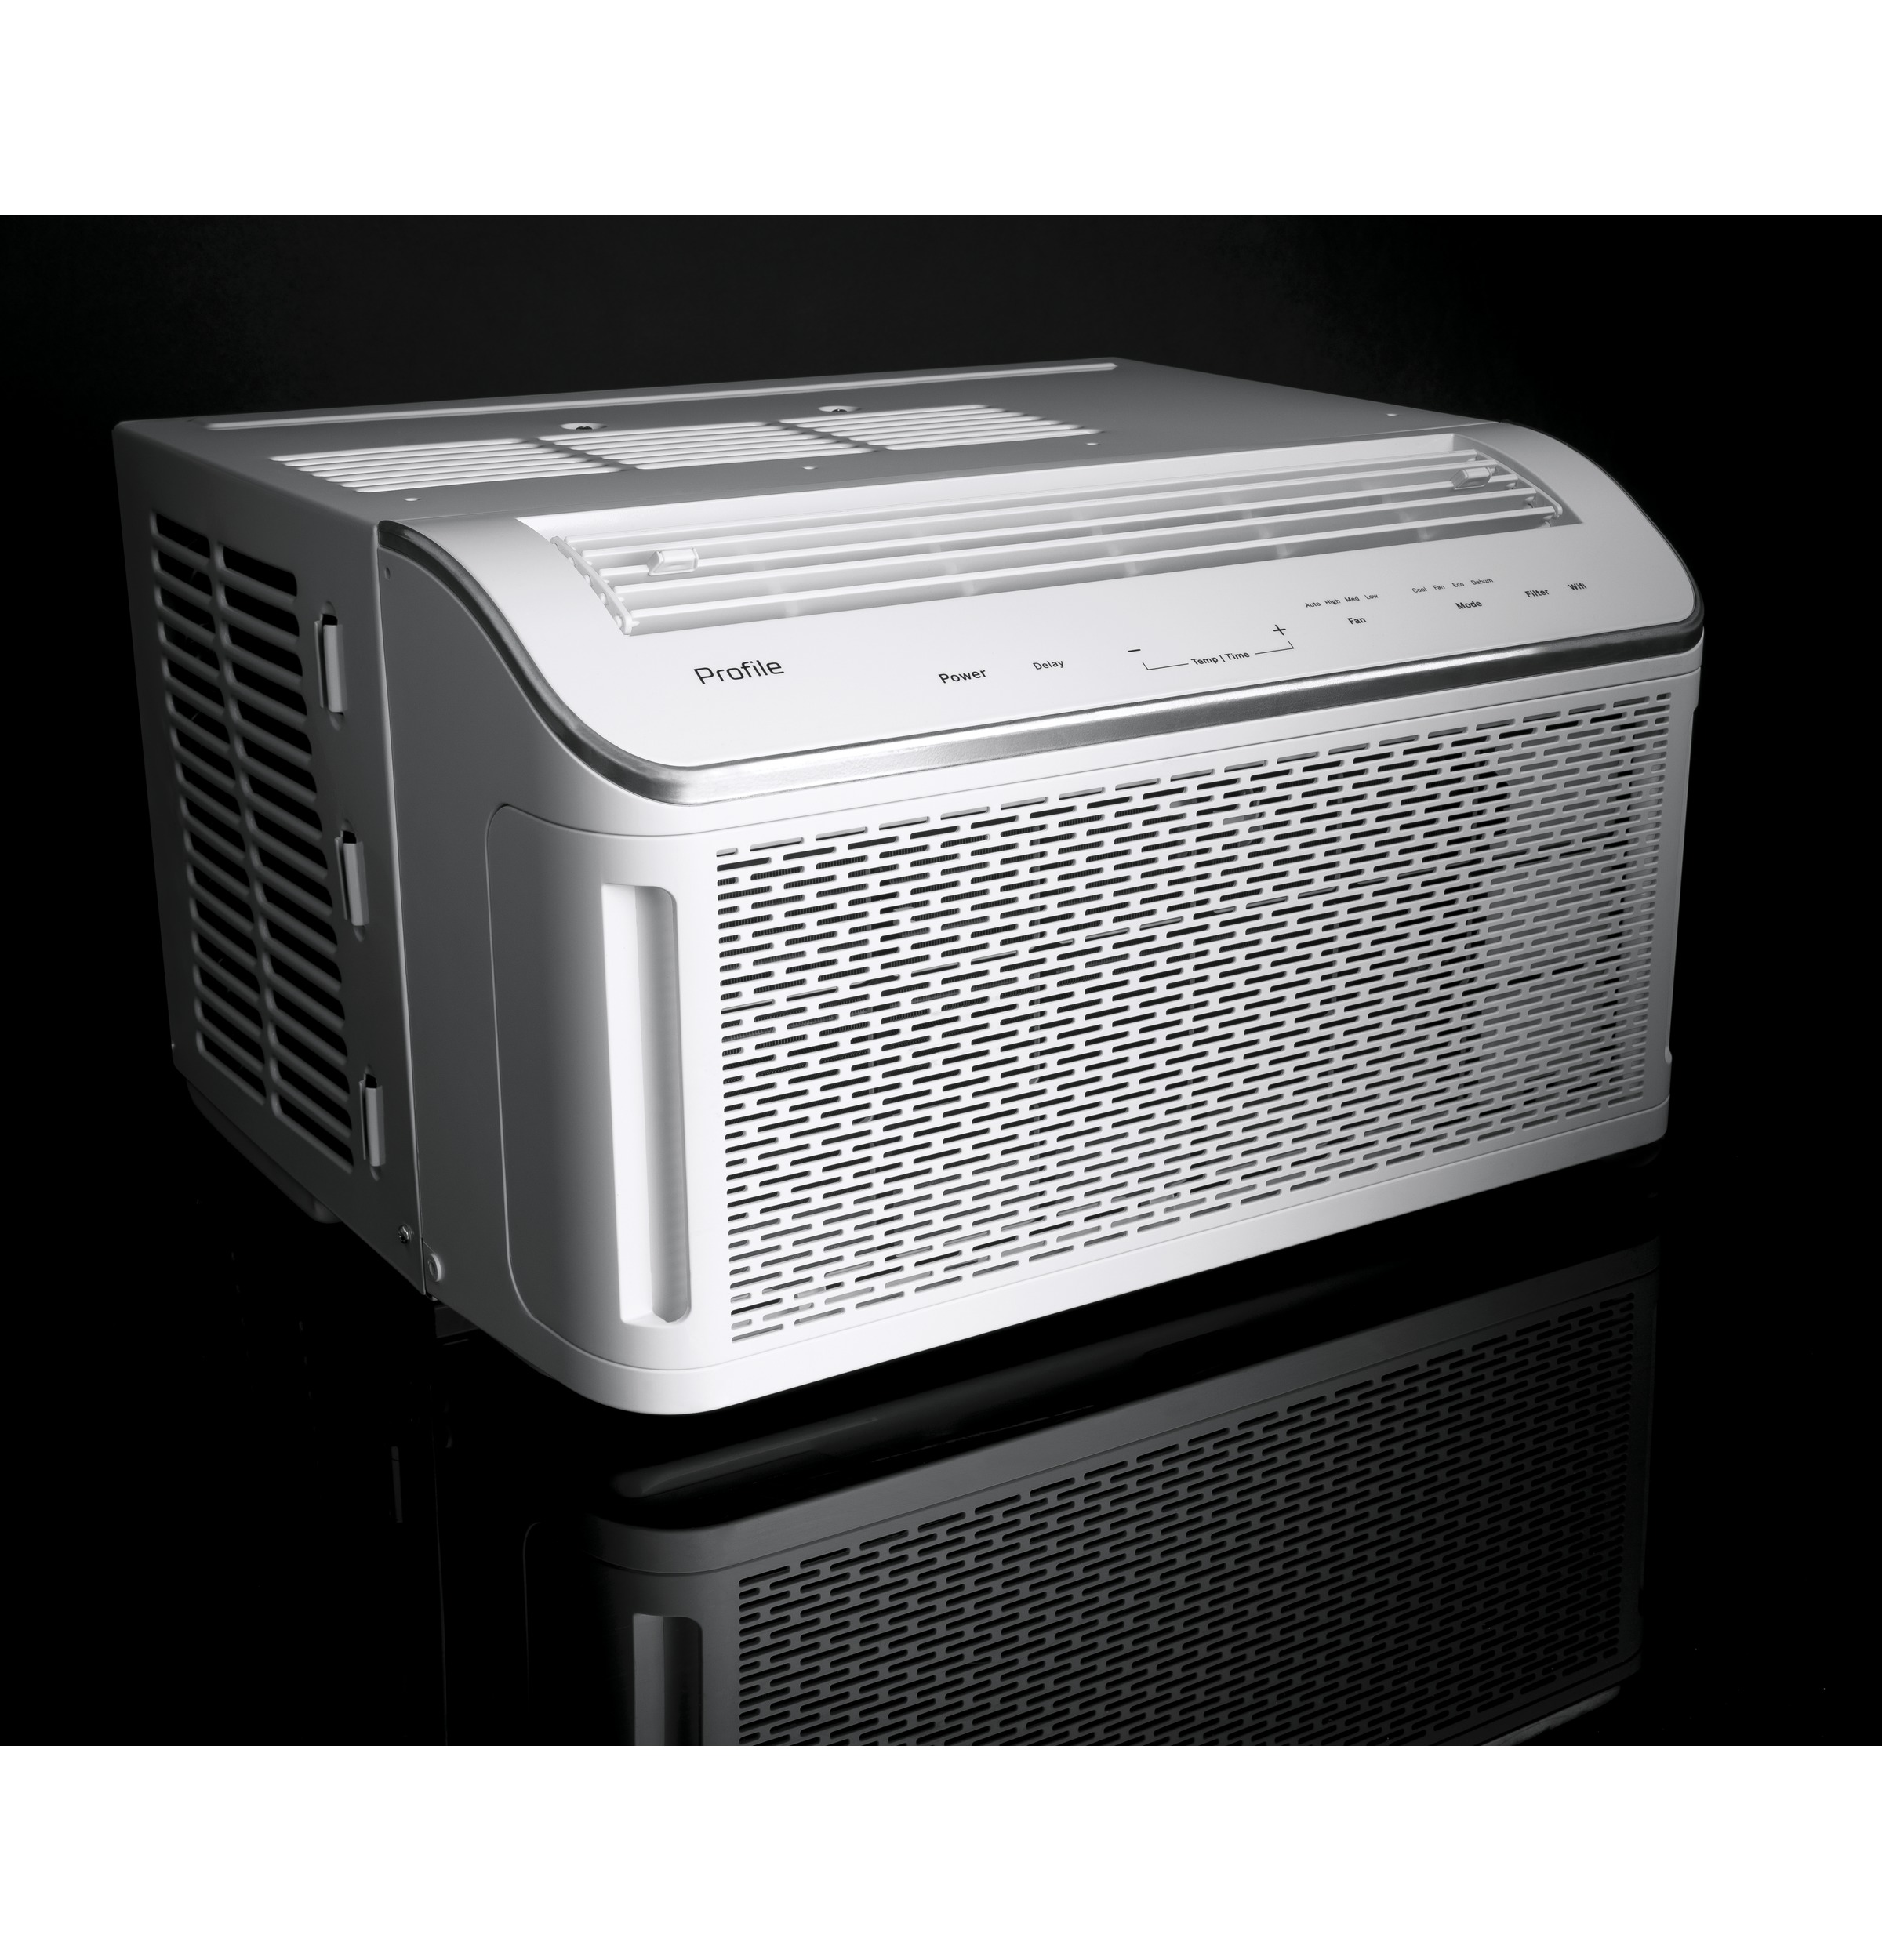 Model: PHC06LY | GE Profile GE Profile™ Series ENERGY STAR® 115 Volt Room Air Conditioner